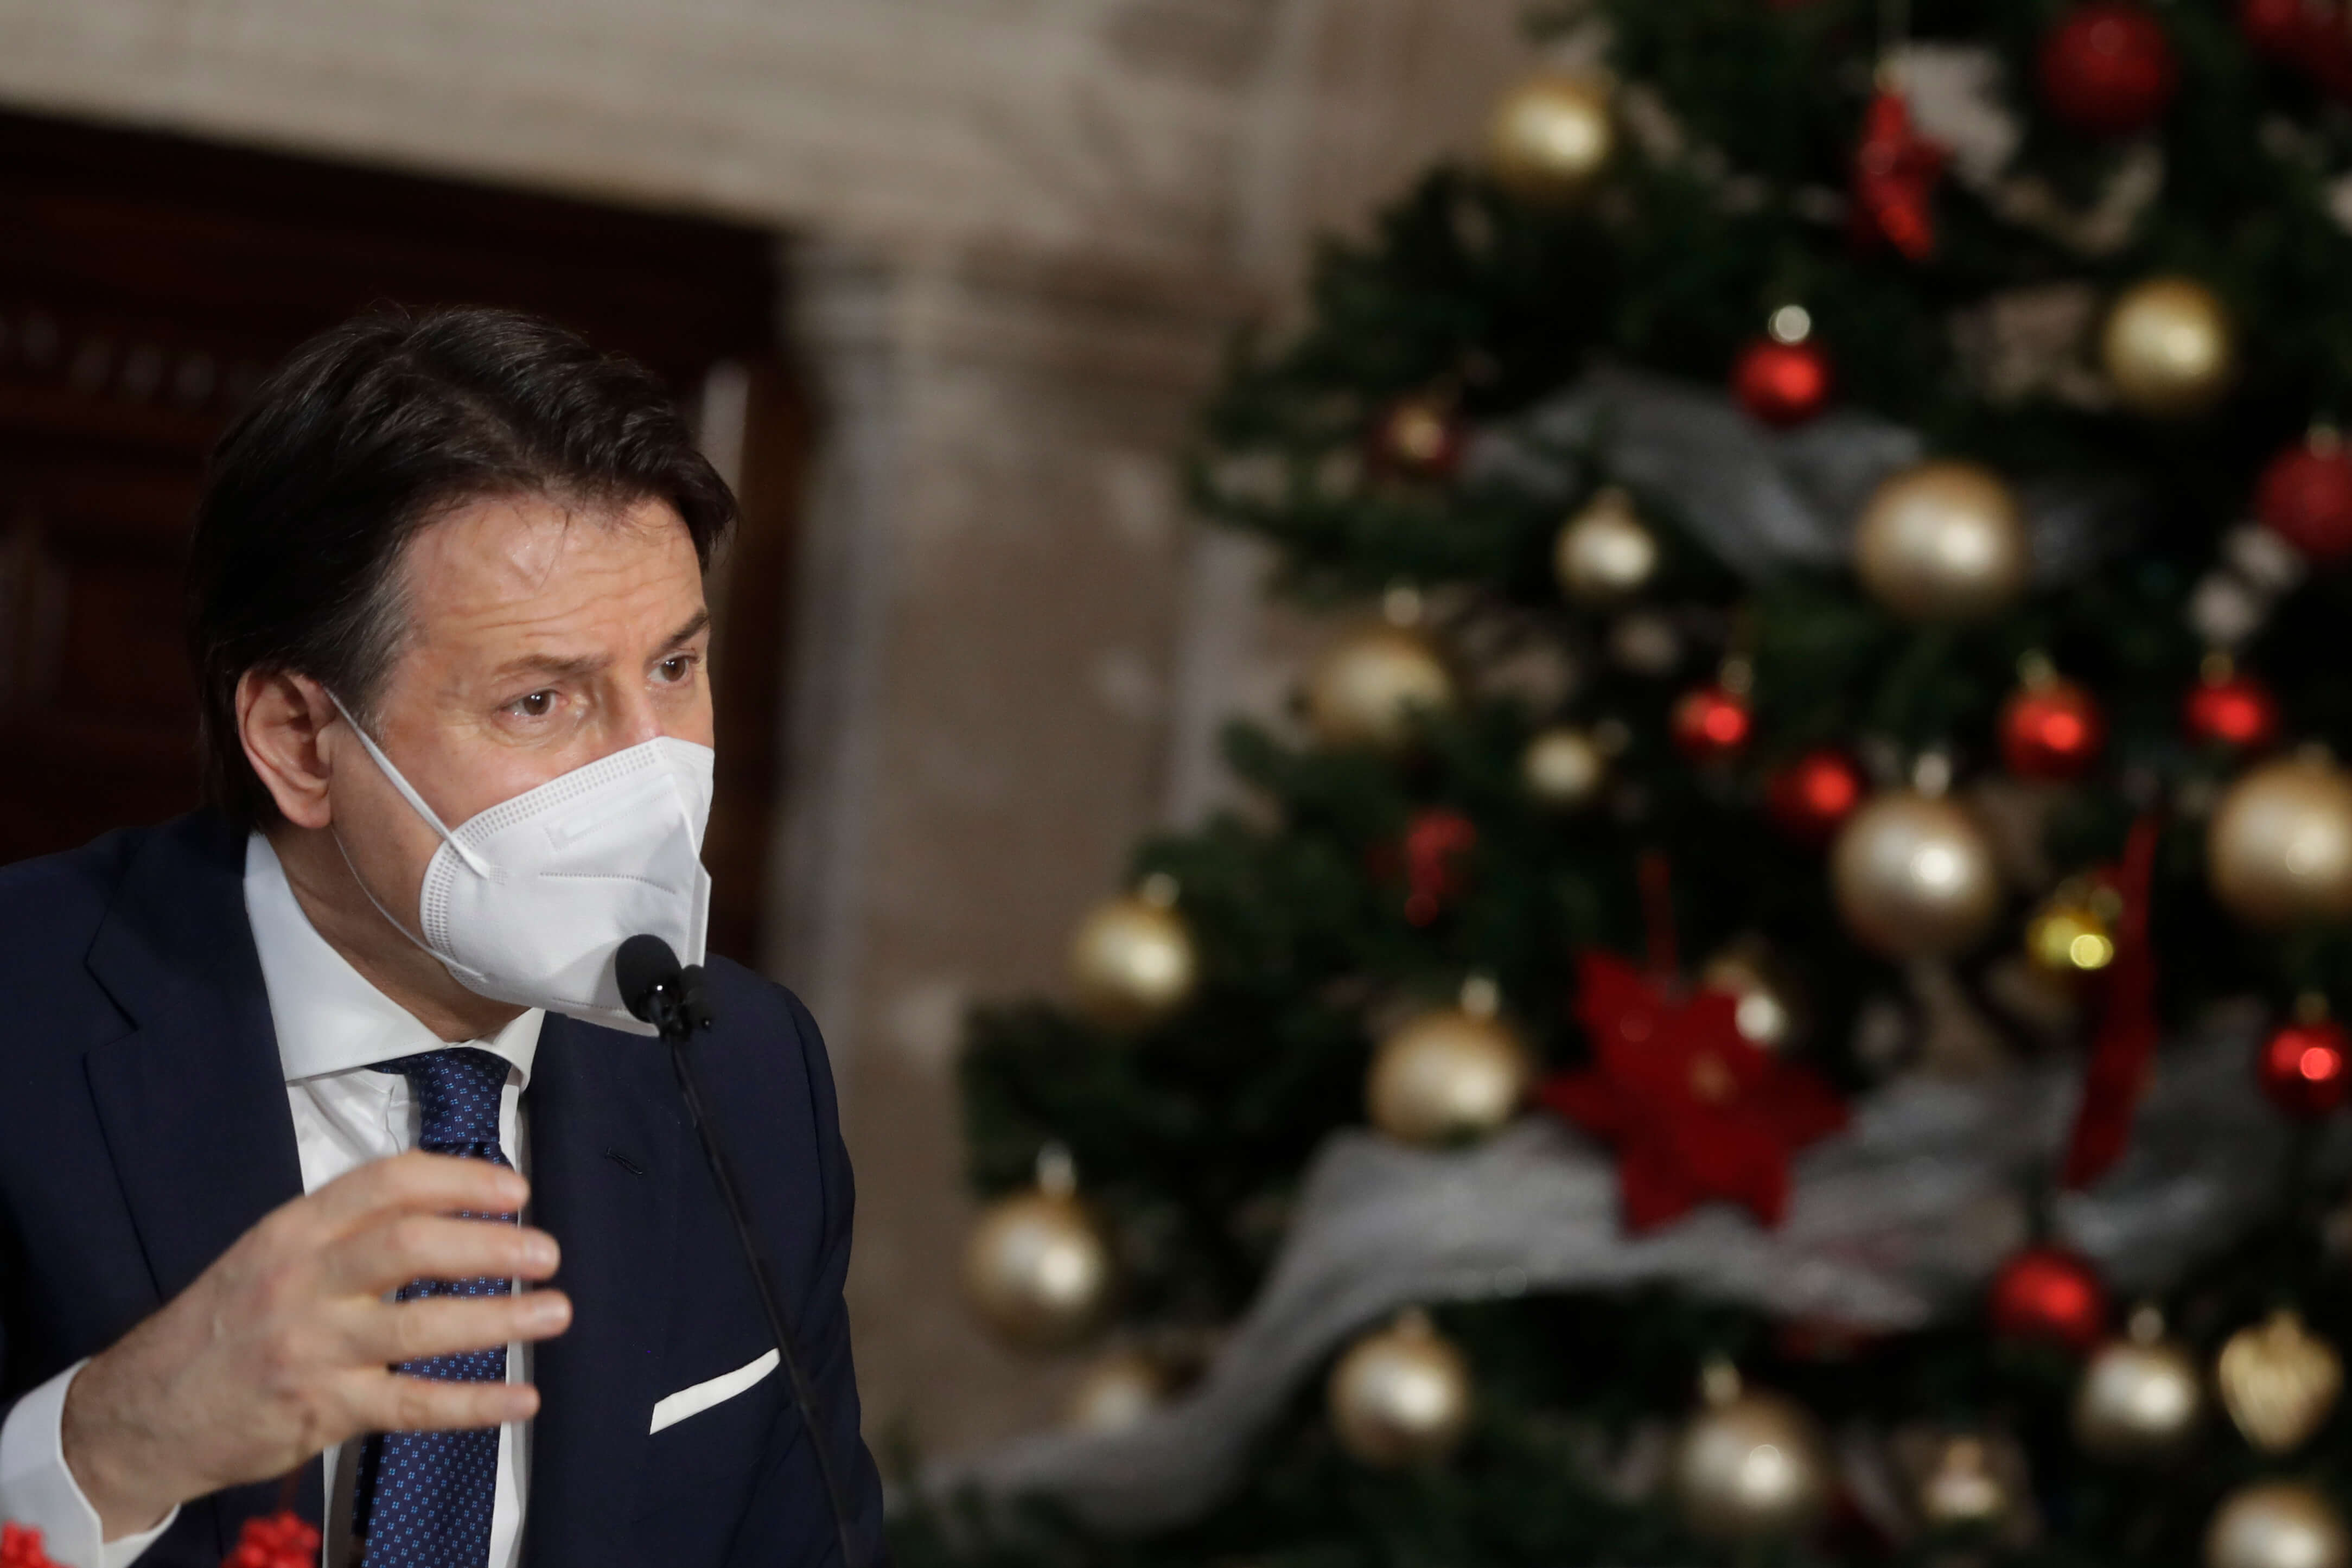 Italy extends virus curbs, delays high school start